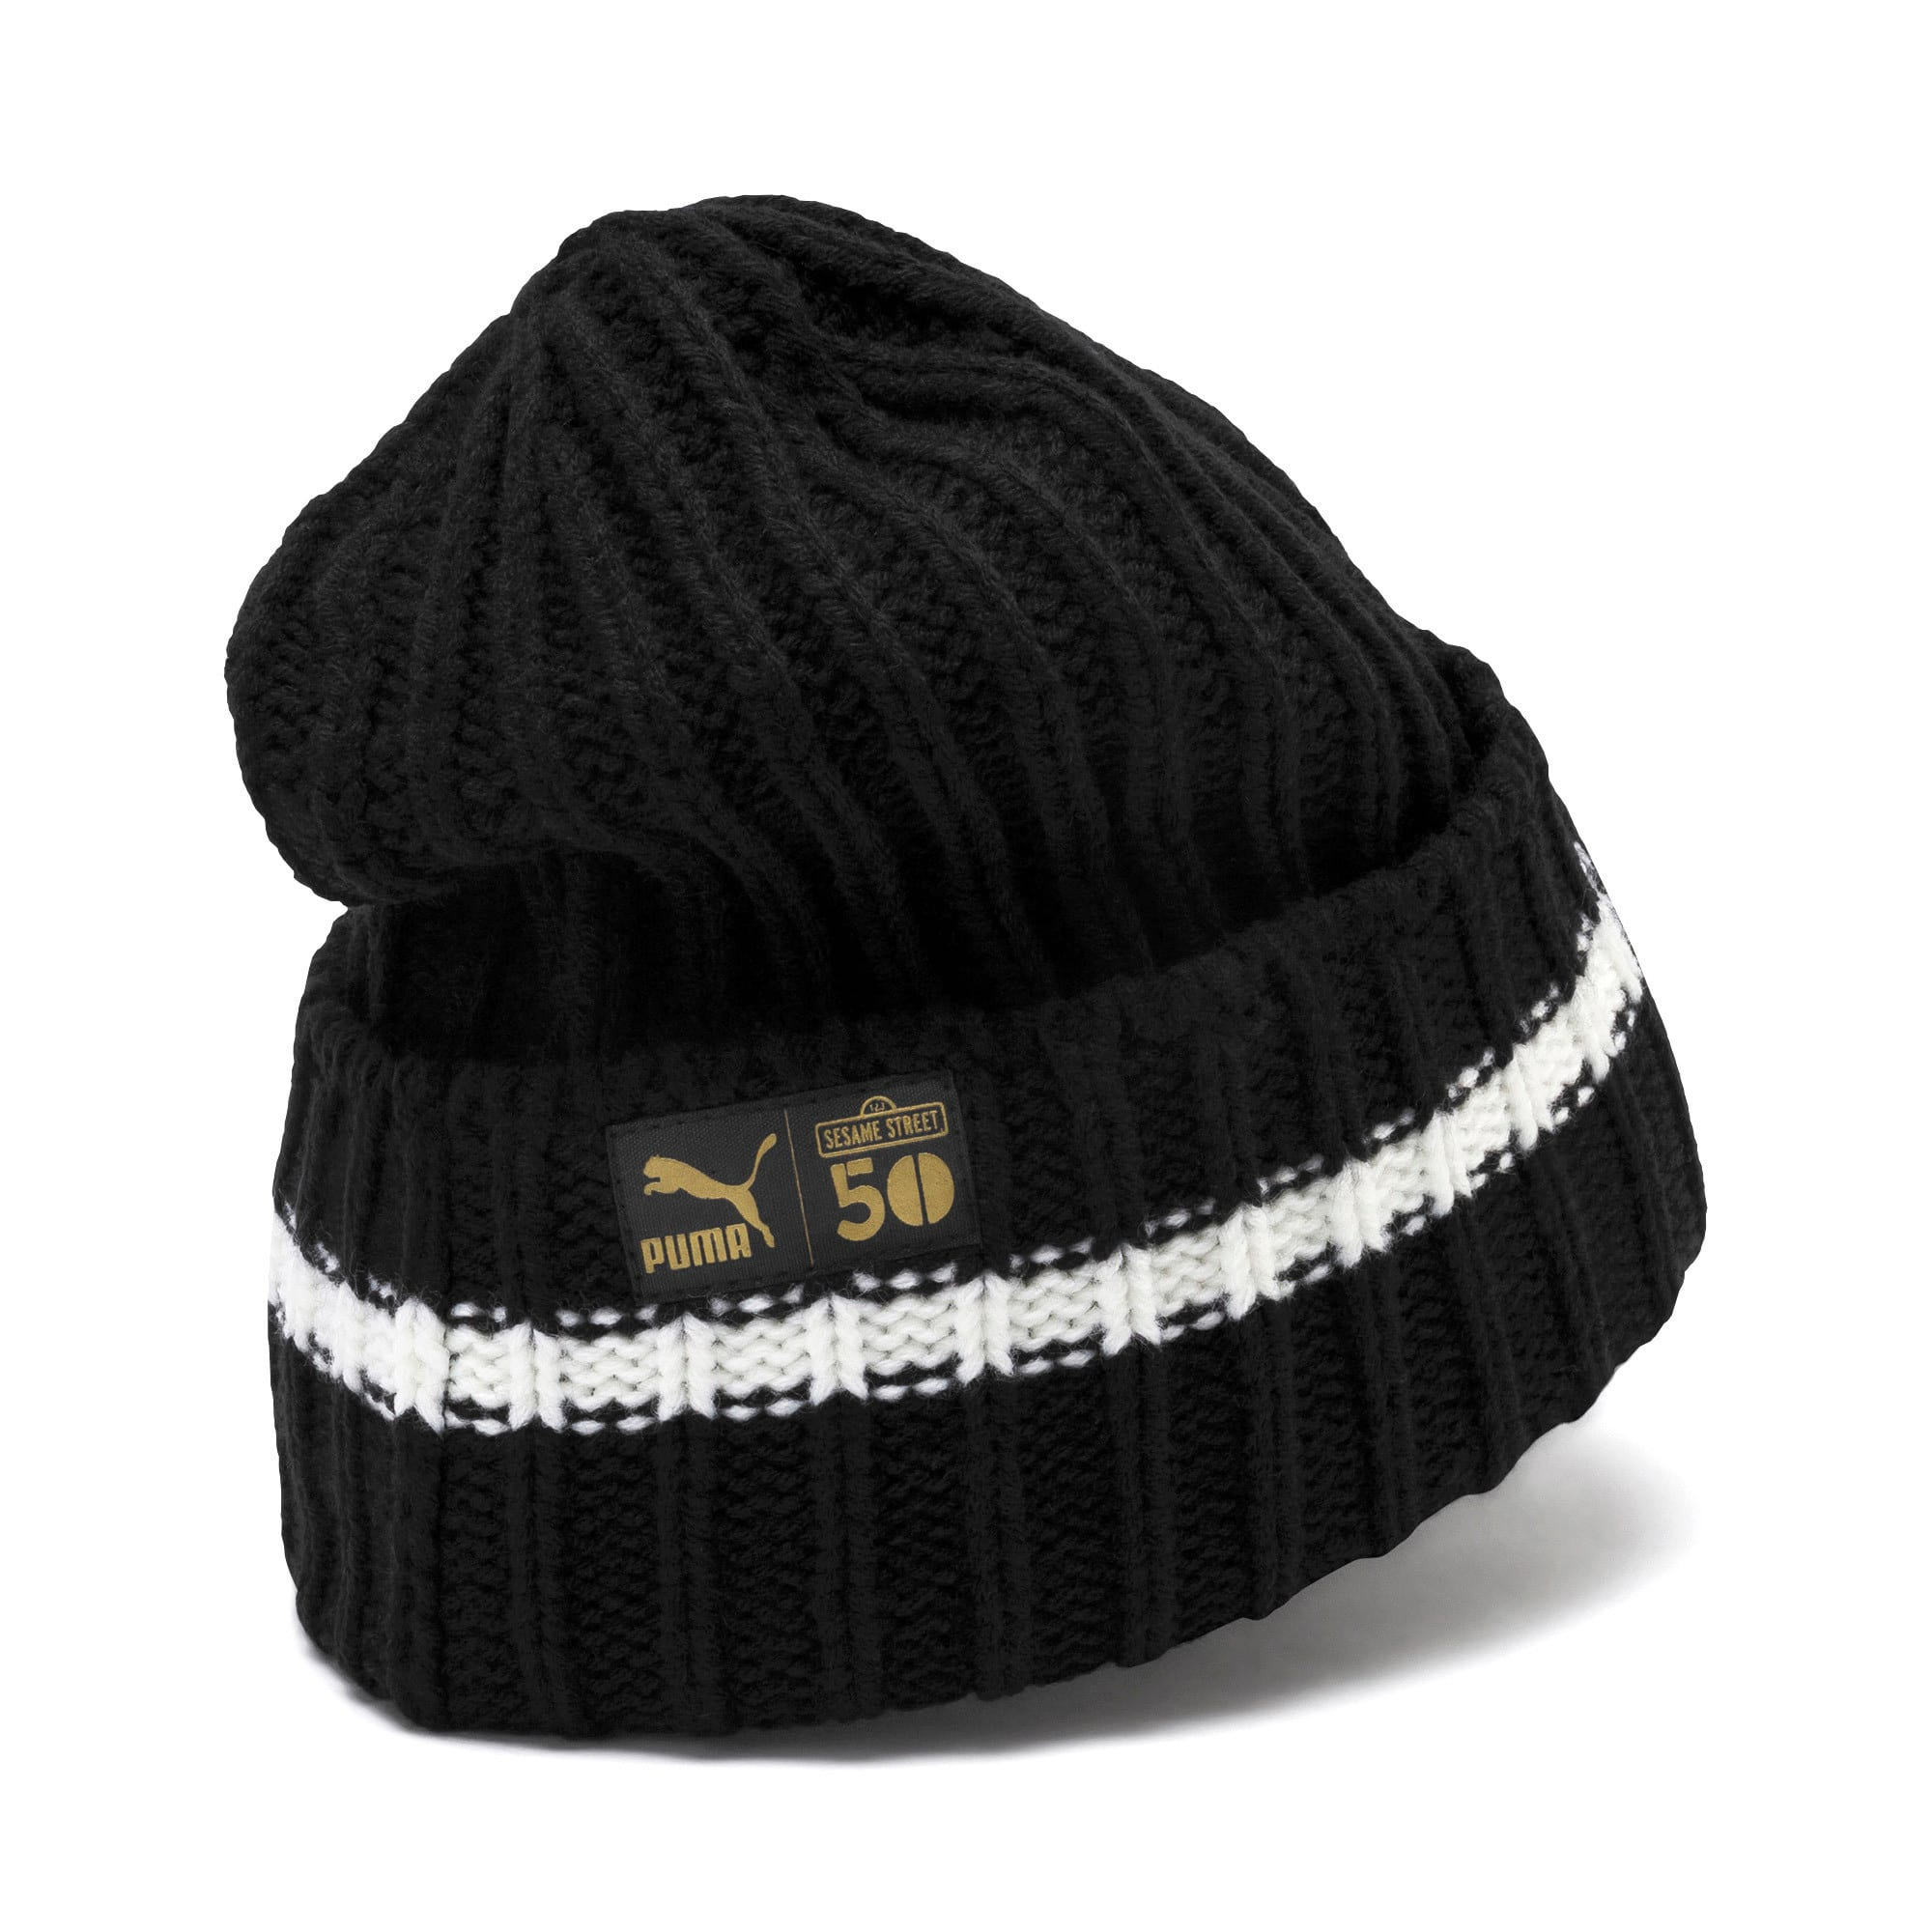 Thumbnail 2 of PUMA x SESAME STREET Kids' Beanie, Puma Black, medium